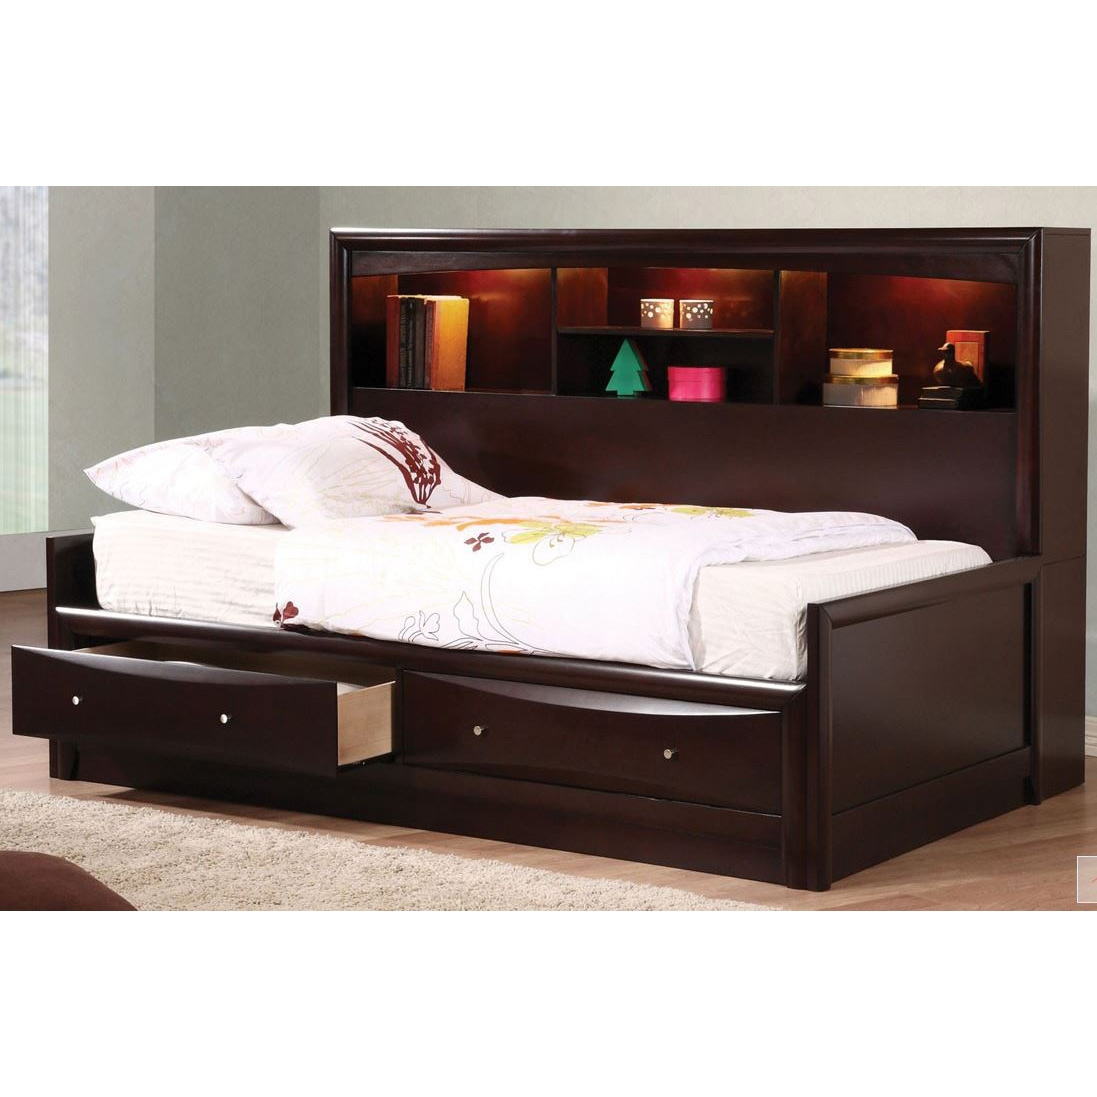 Image of: Bookcase Headboard Queen Brown